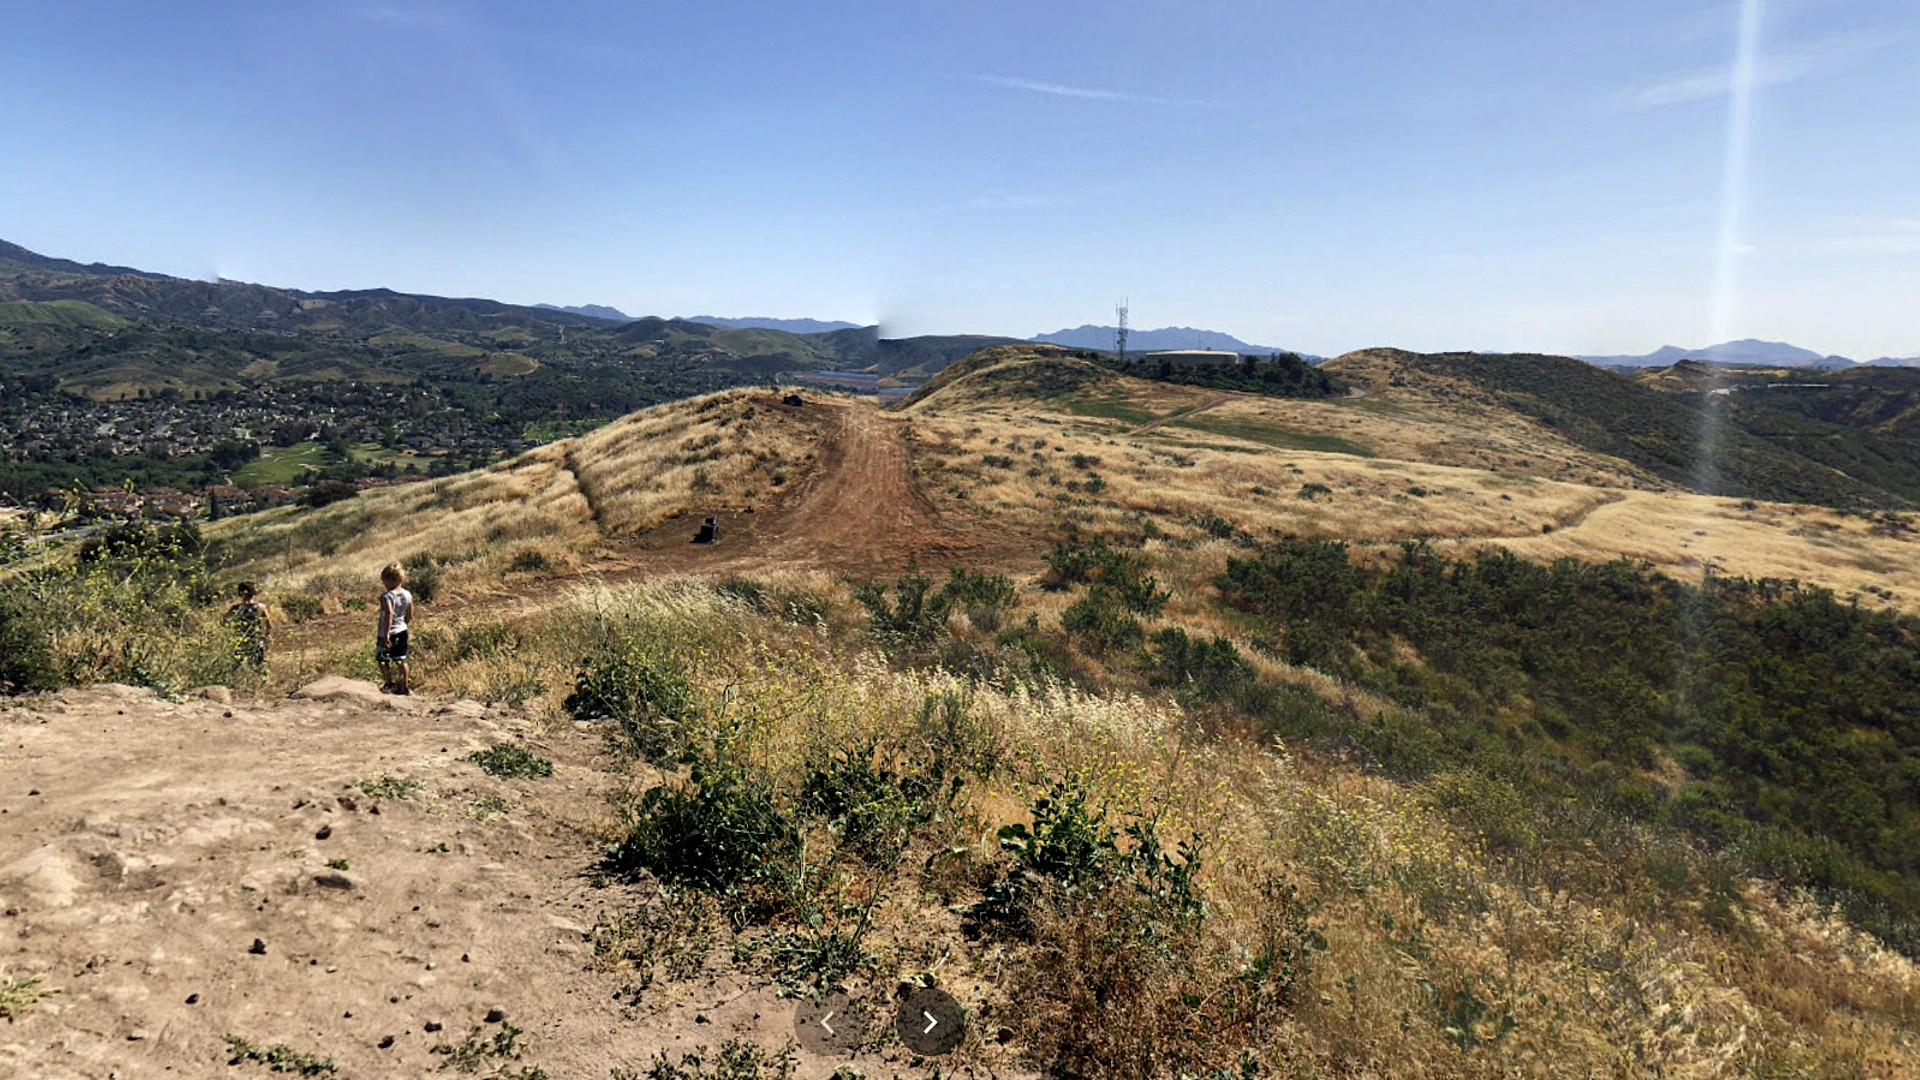 A trail leading to the Mt. McCoy Cross in Simi Valley is seen in this file image from Google Maps.